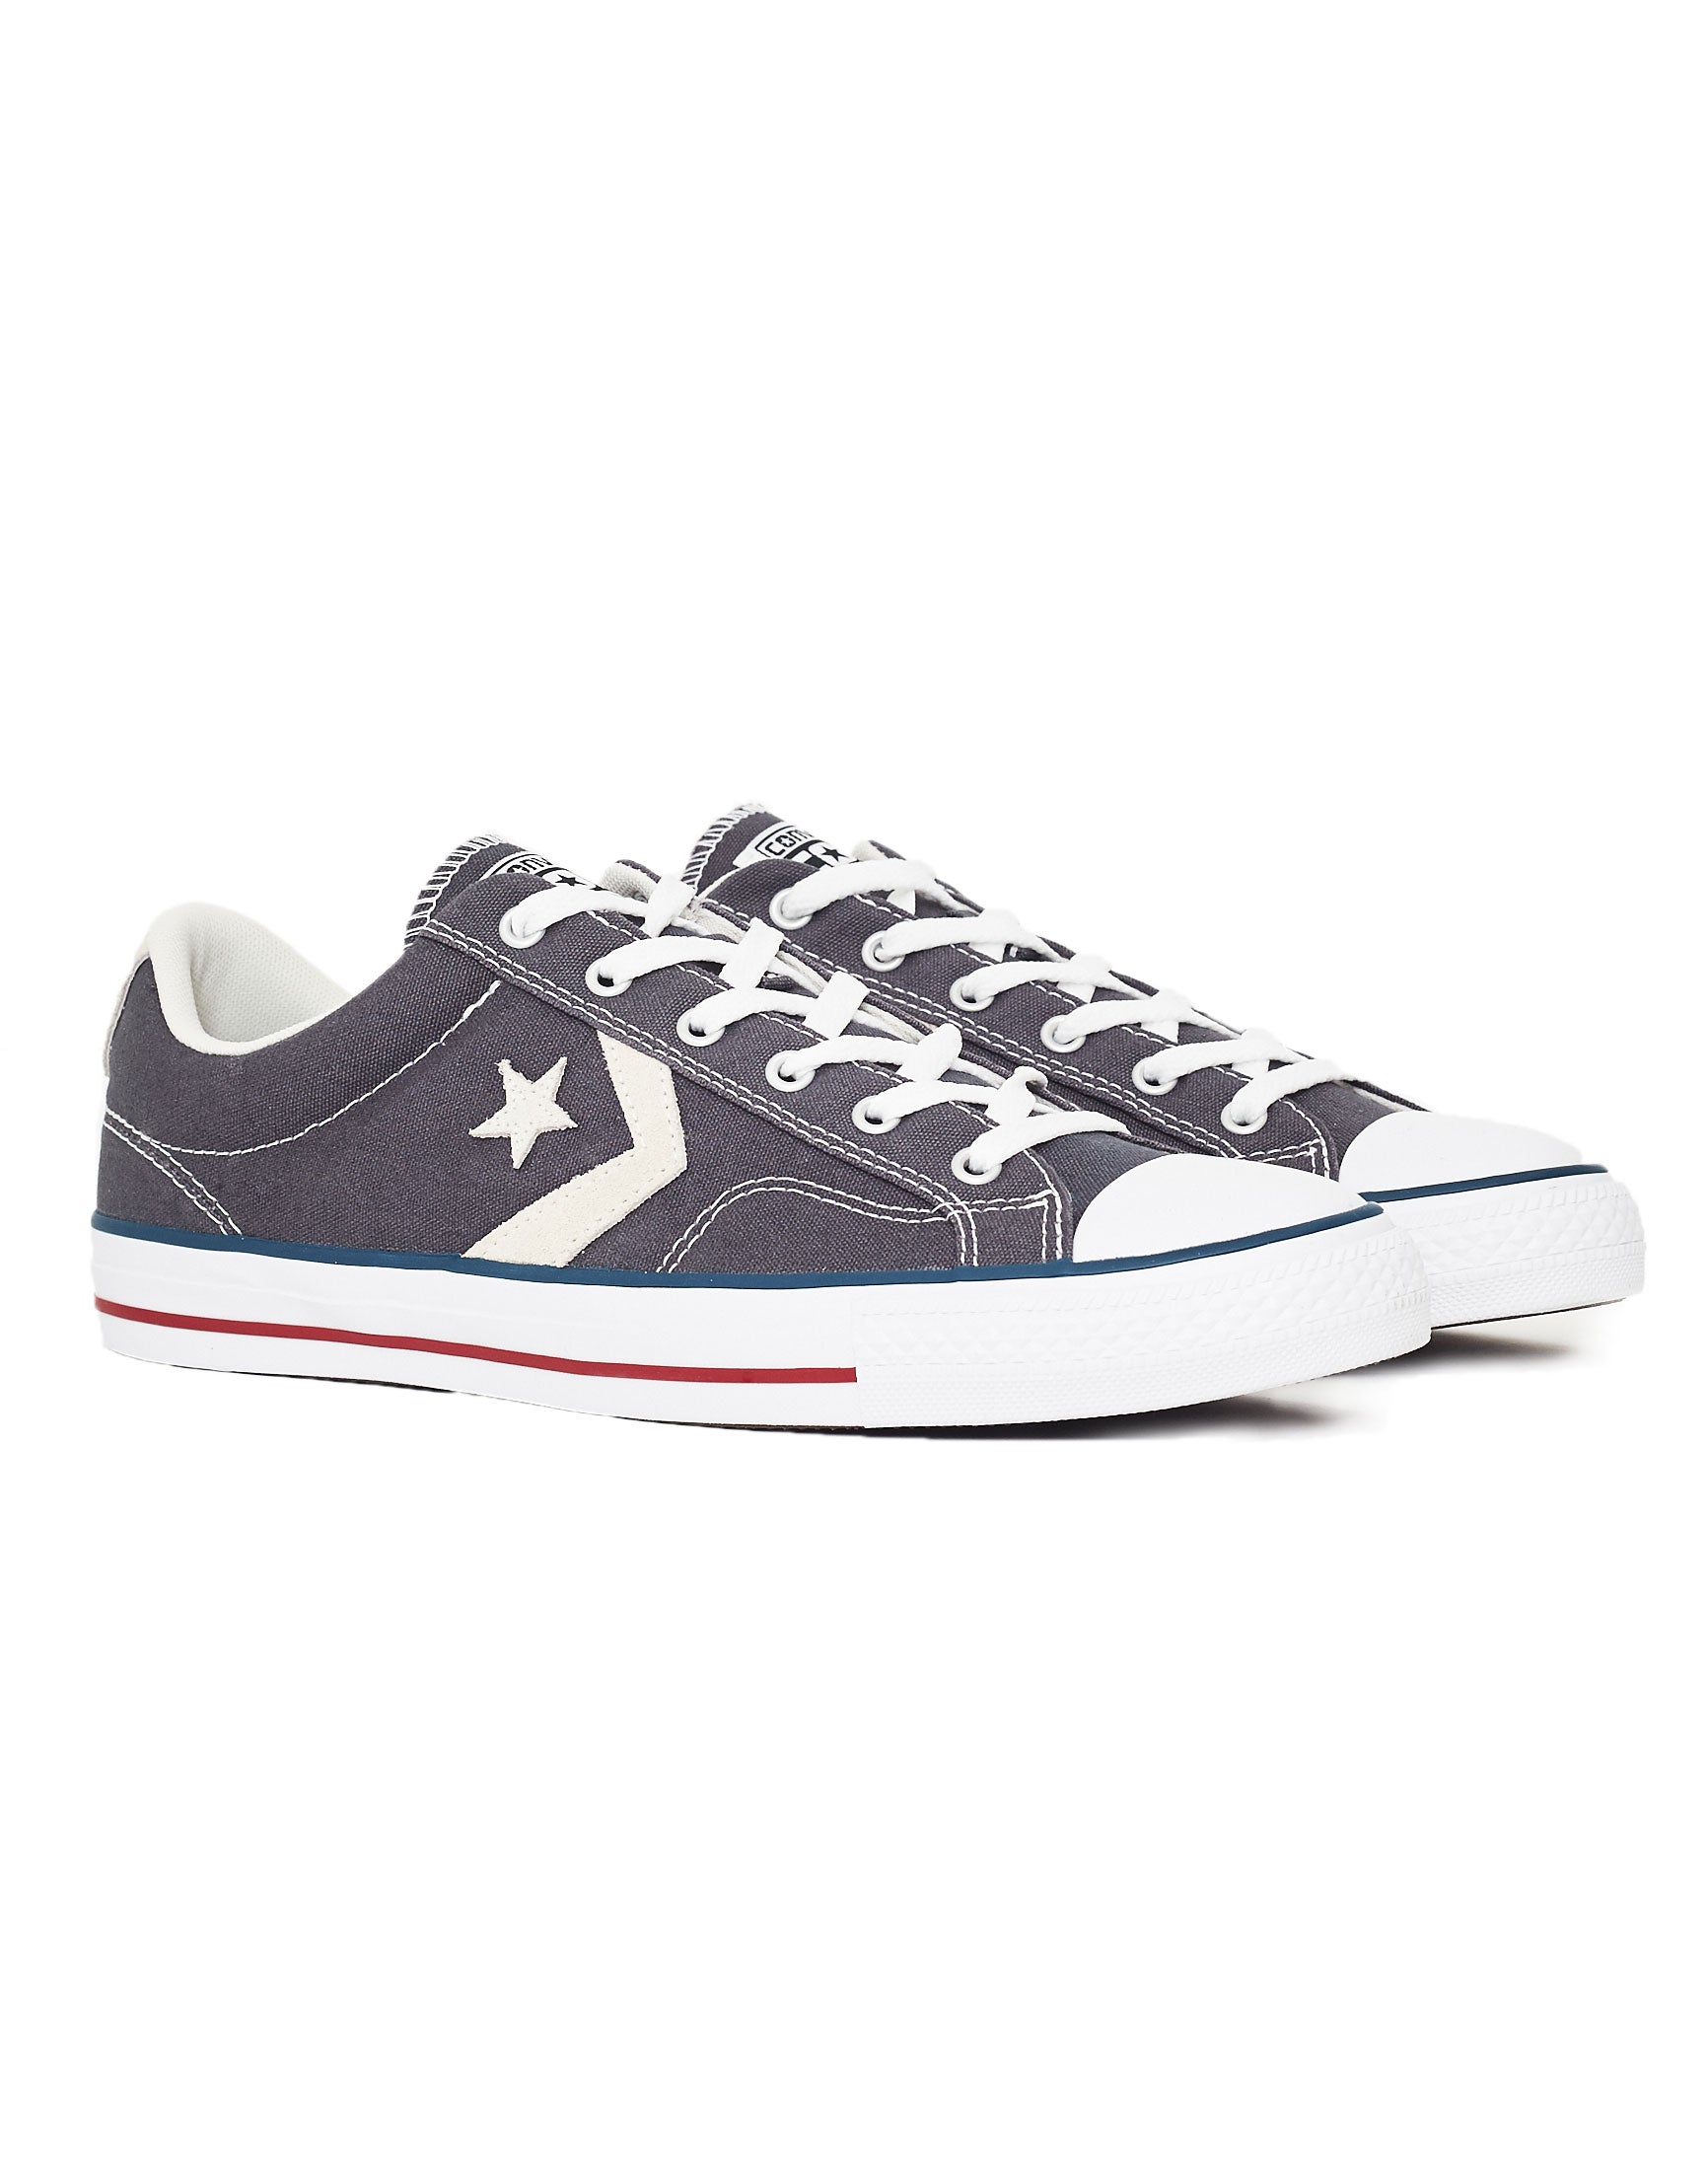 Converse CONS Star Player Plimsolls Grey